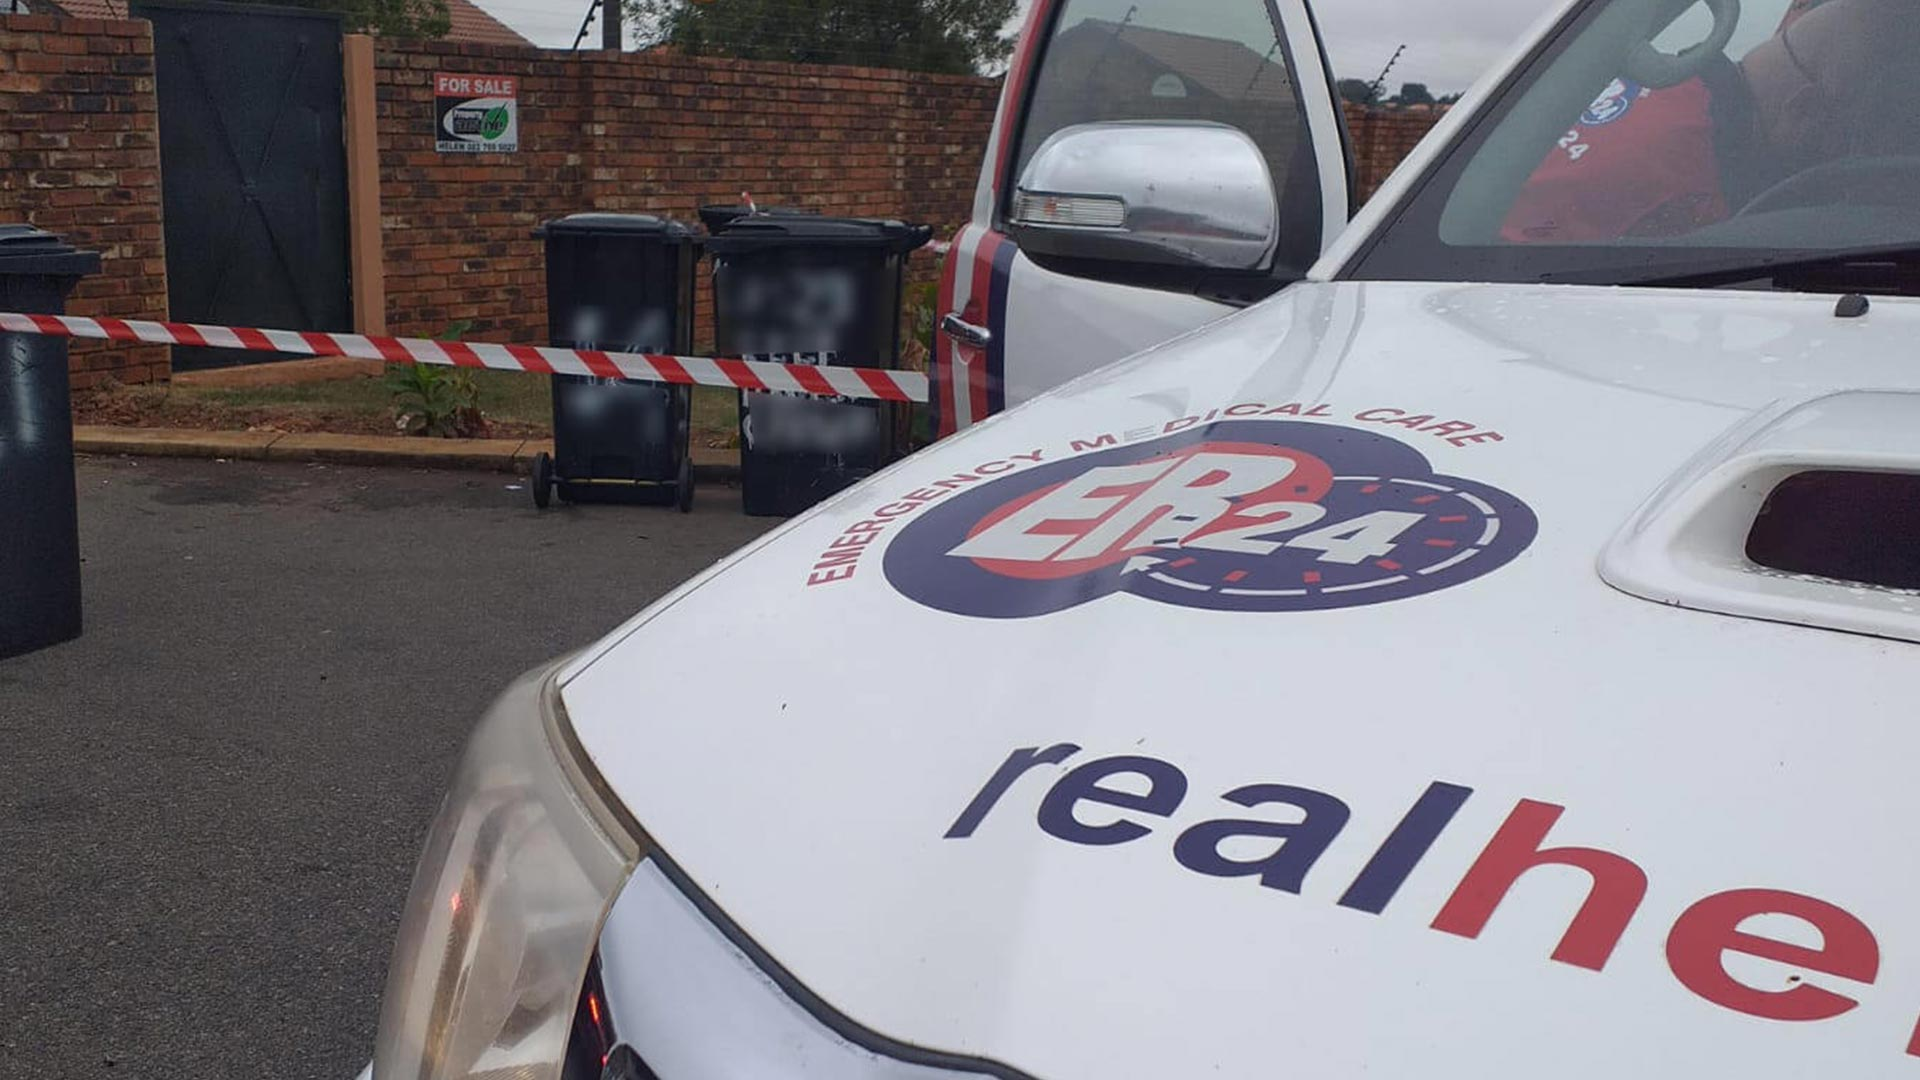 LINDHAVEN-New born baby found in dustbin